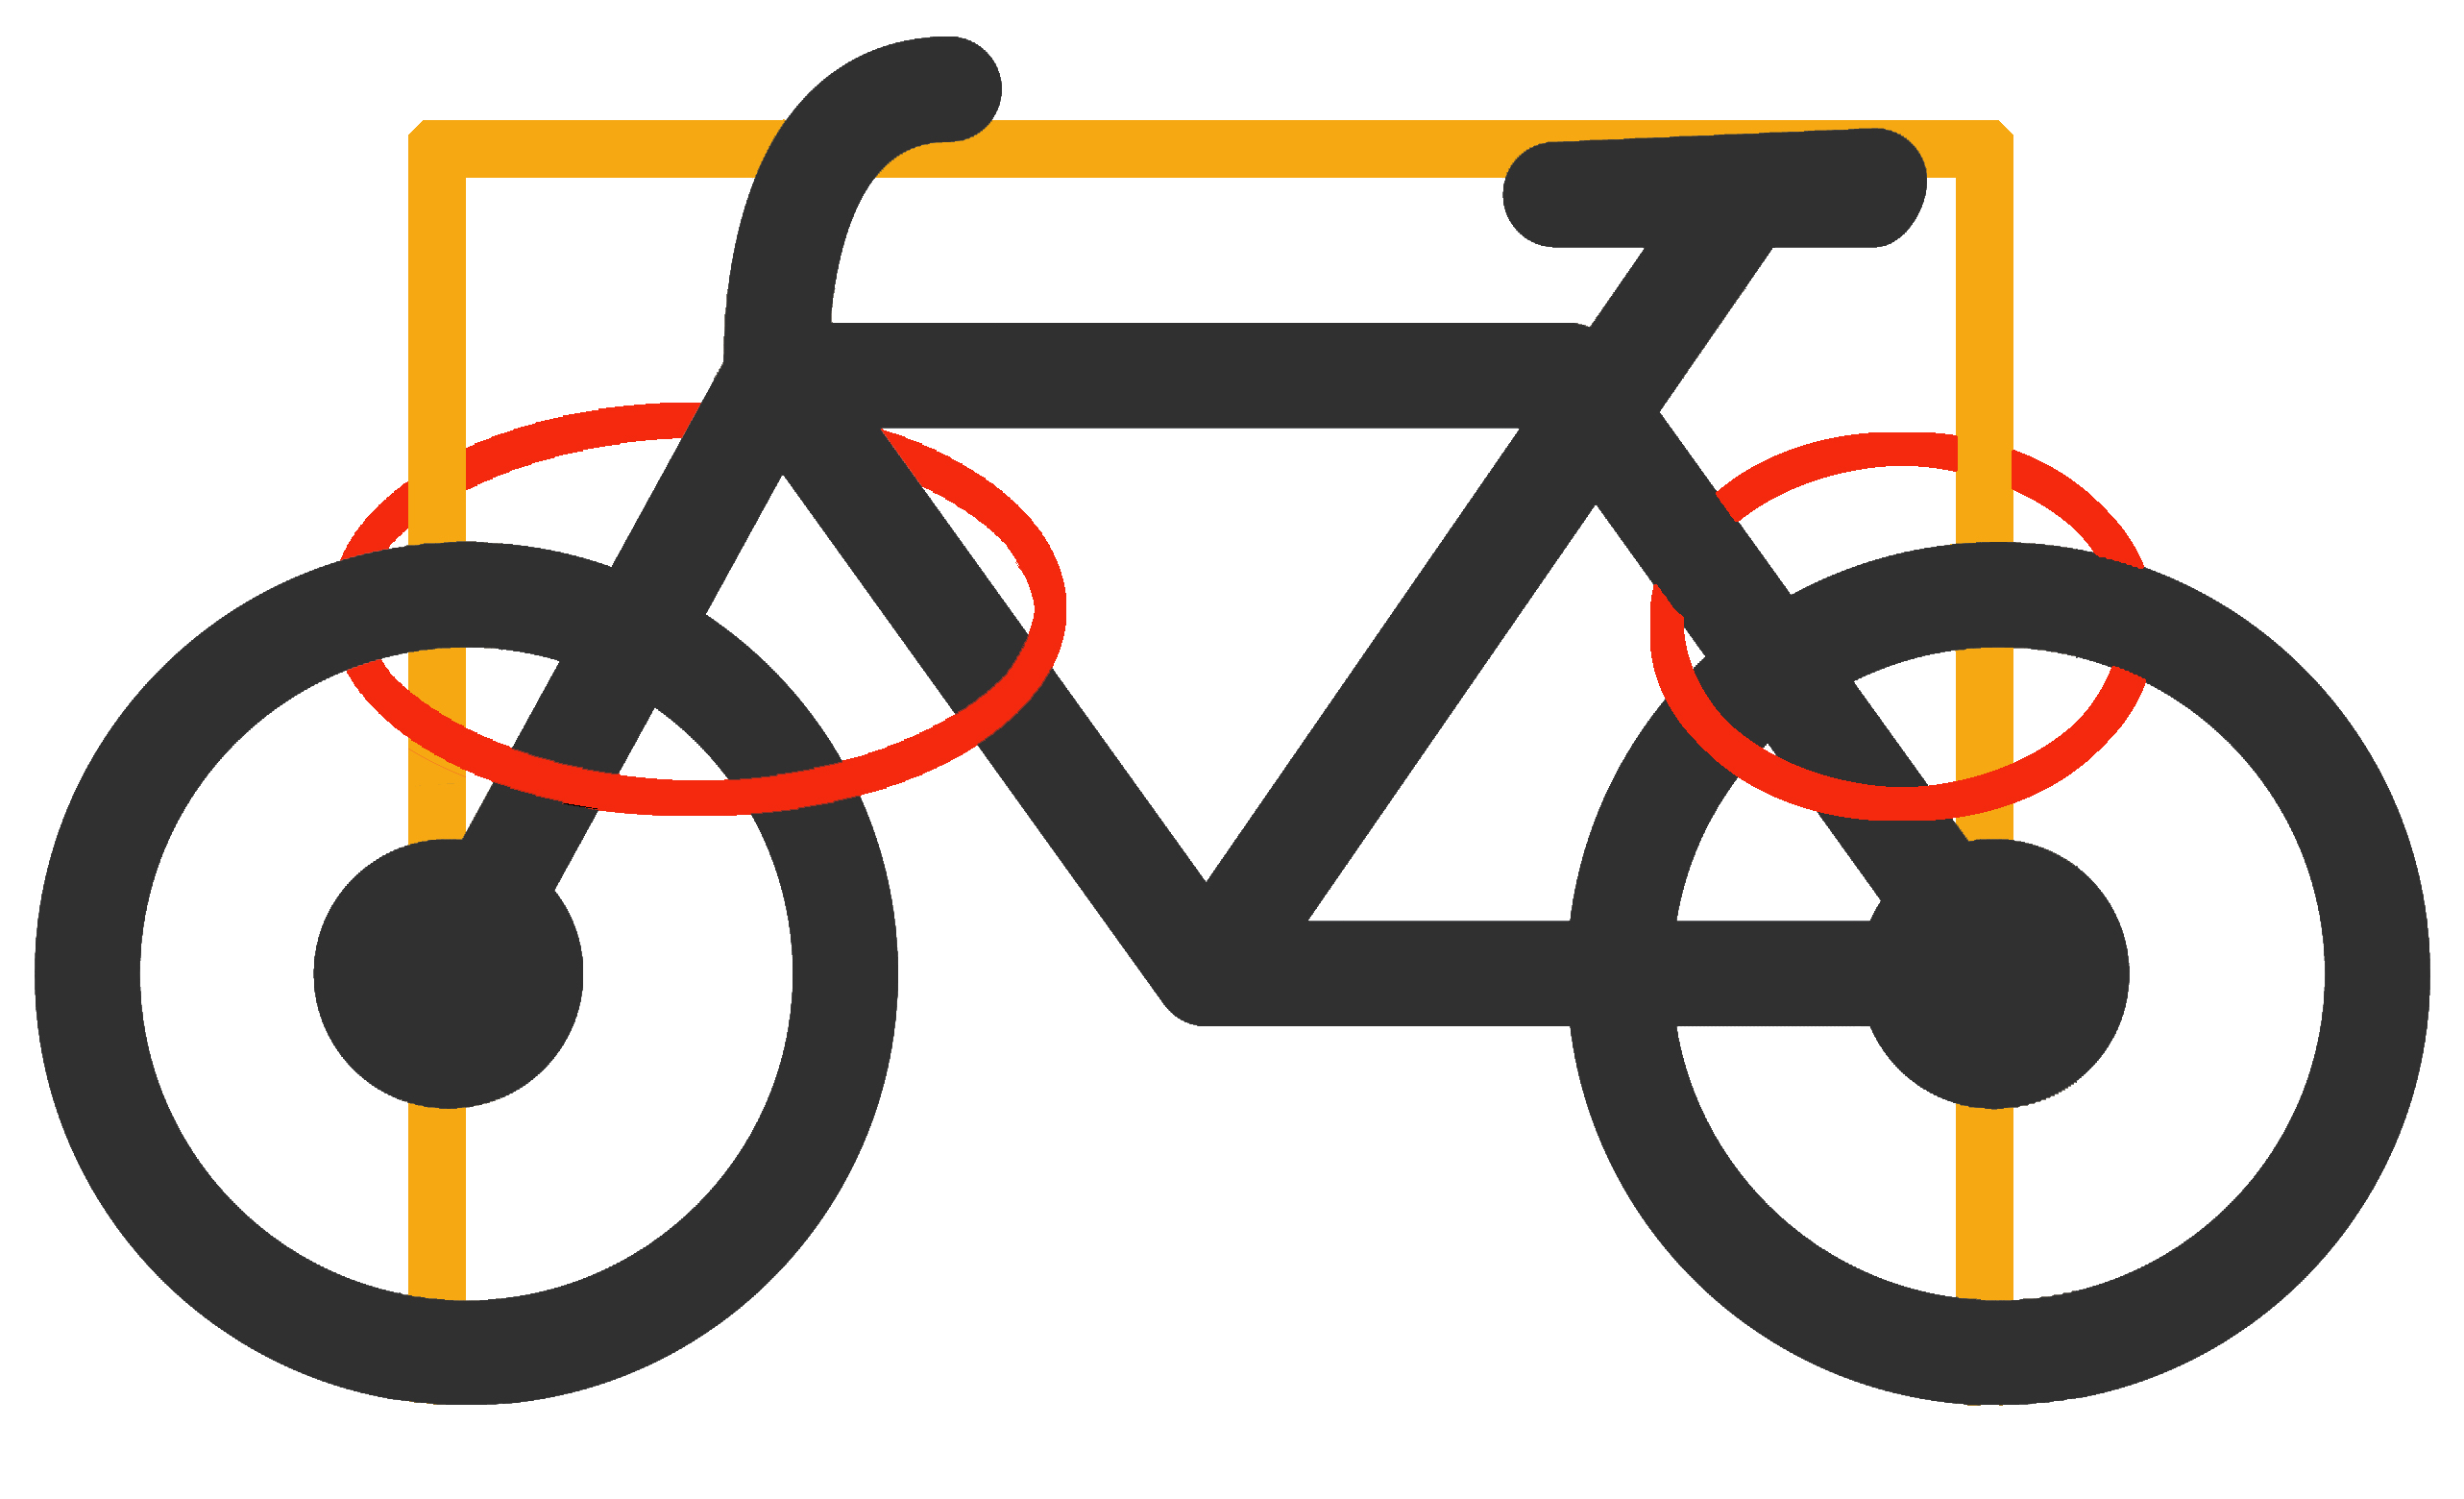 Imperial college bike user. Cycle clipart pop image transparent download